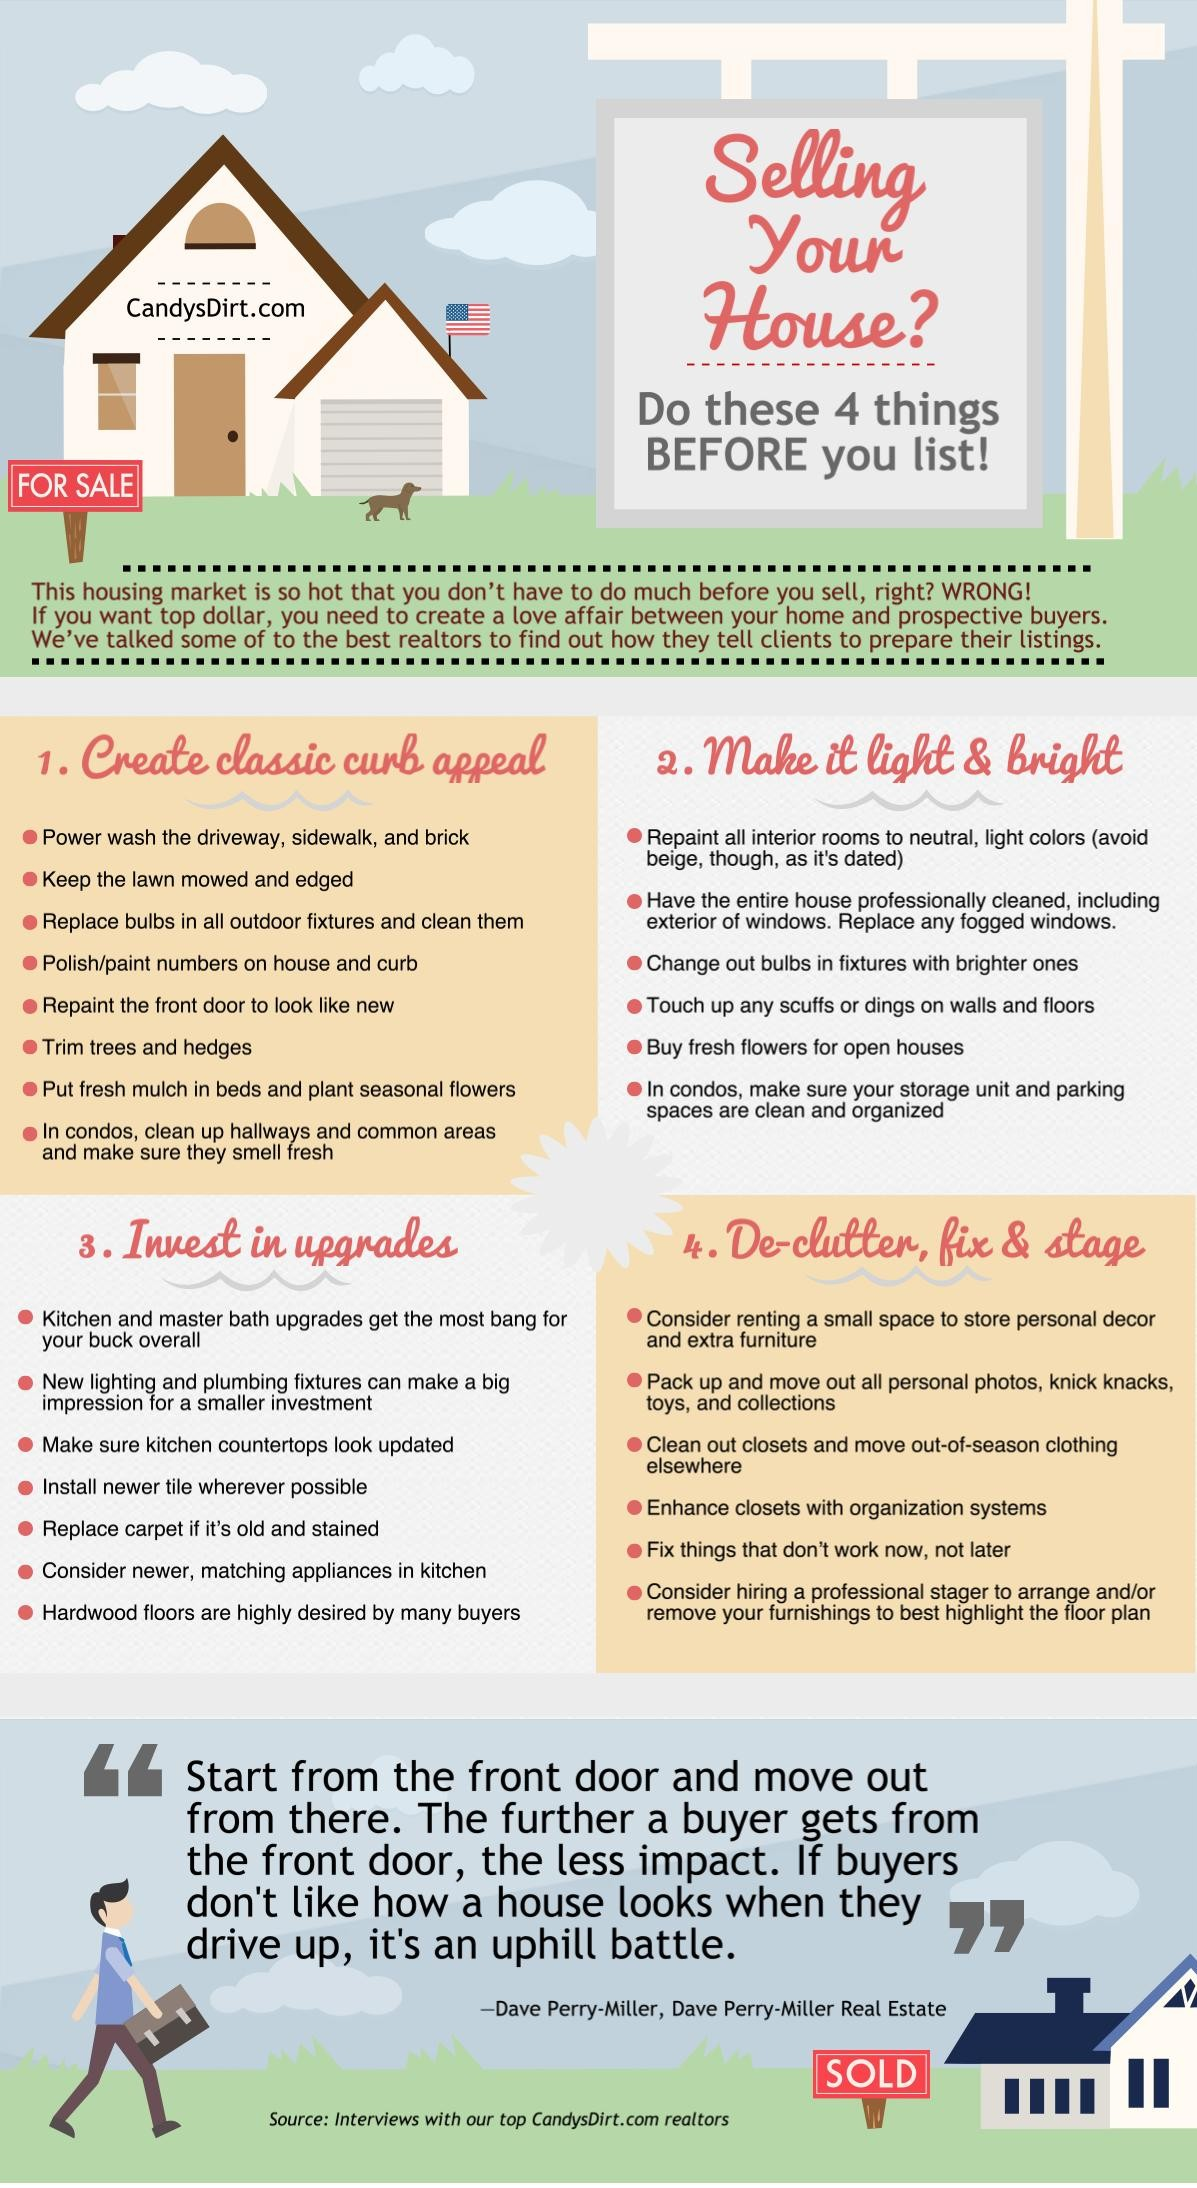 Home Selling Tips Infographic